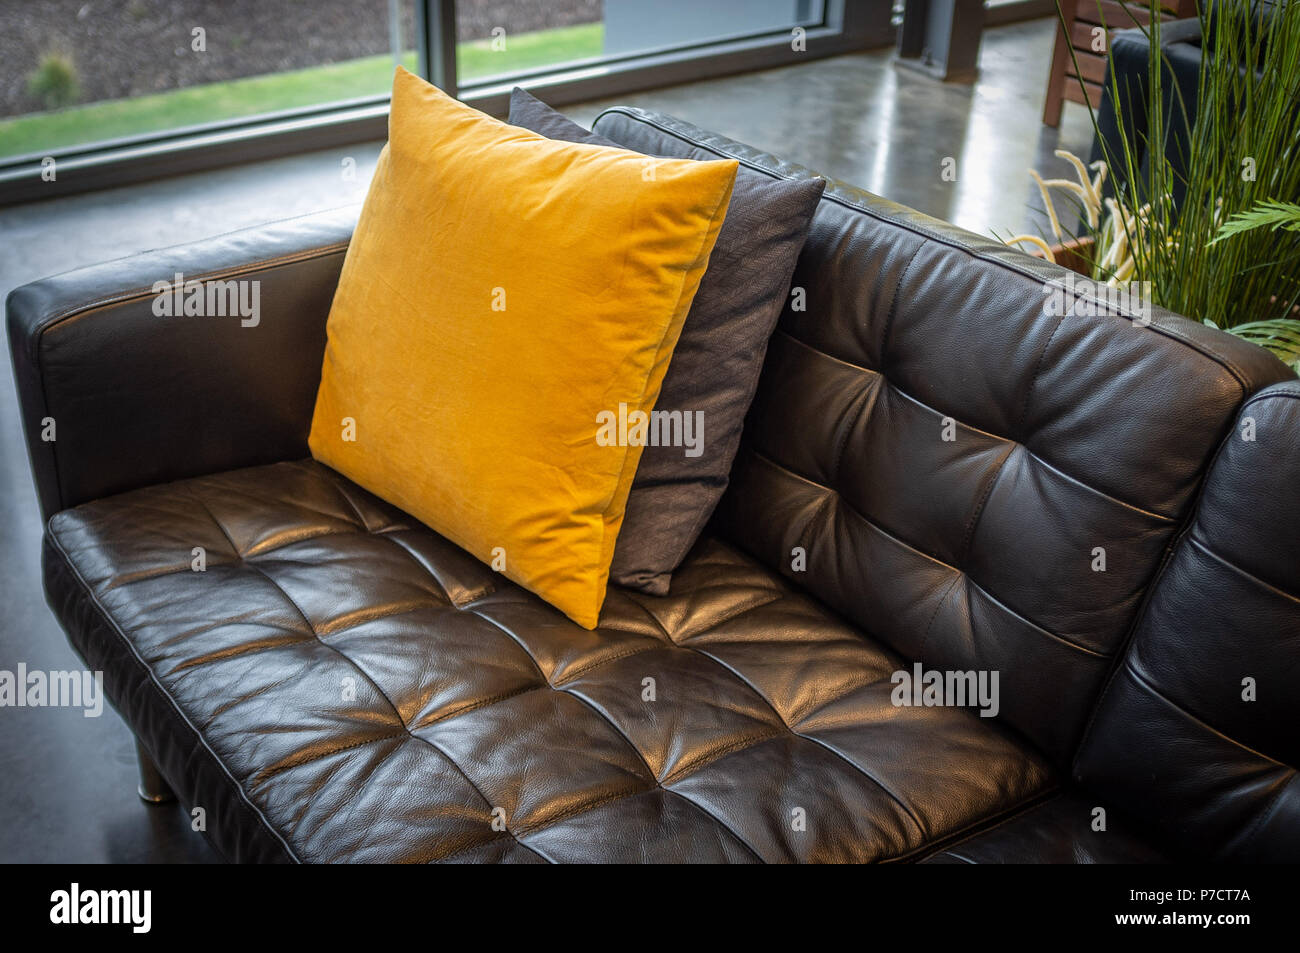 Pillows On Black Leather Couch Interior Design Sample Stock Photo